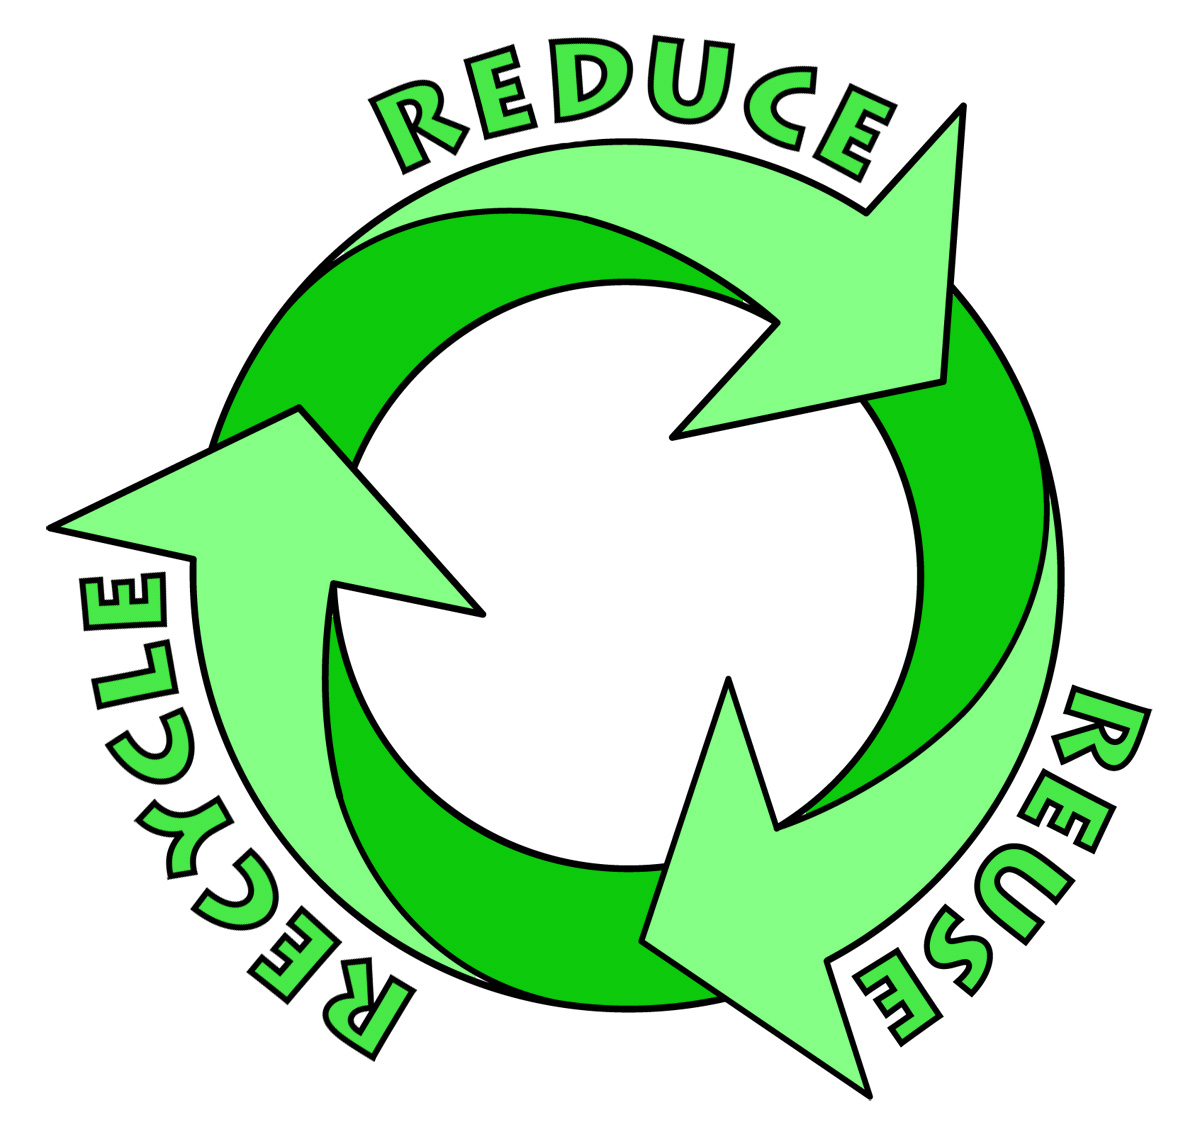 Recycle symbol clipart free download best recycle symbol clipart 1200x1132 recycle can clip art biocorpaavc Gallery